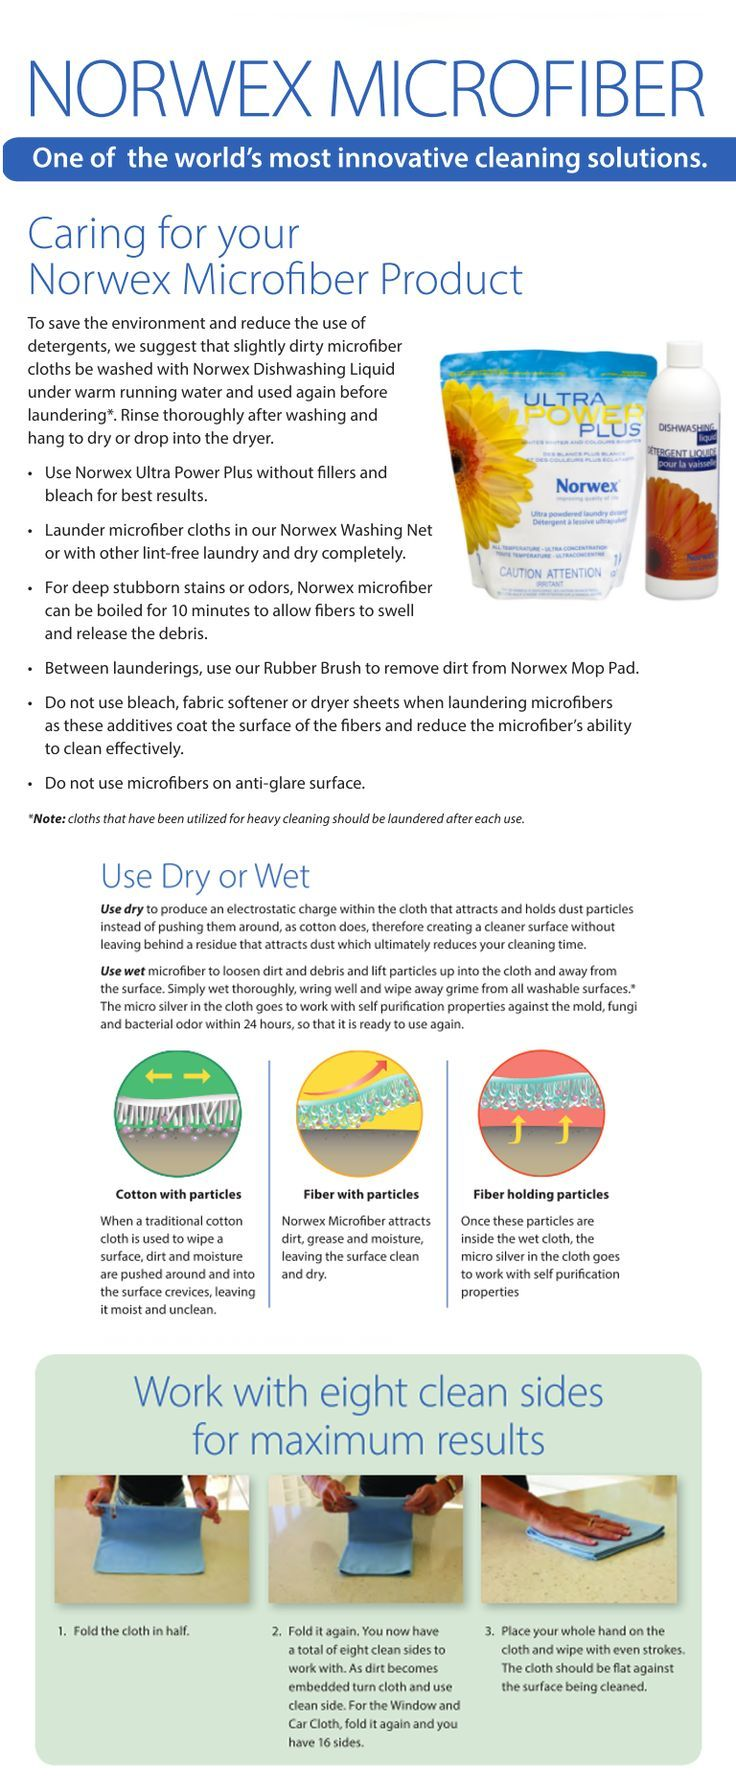 Norwex Microfiber Washing Care And Usage Instructions